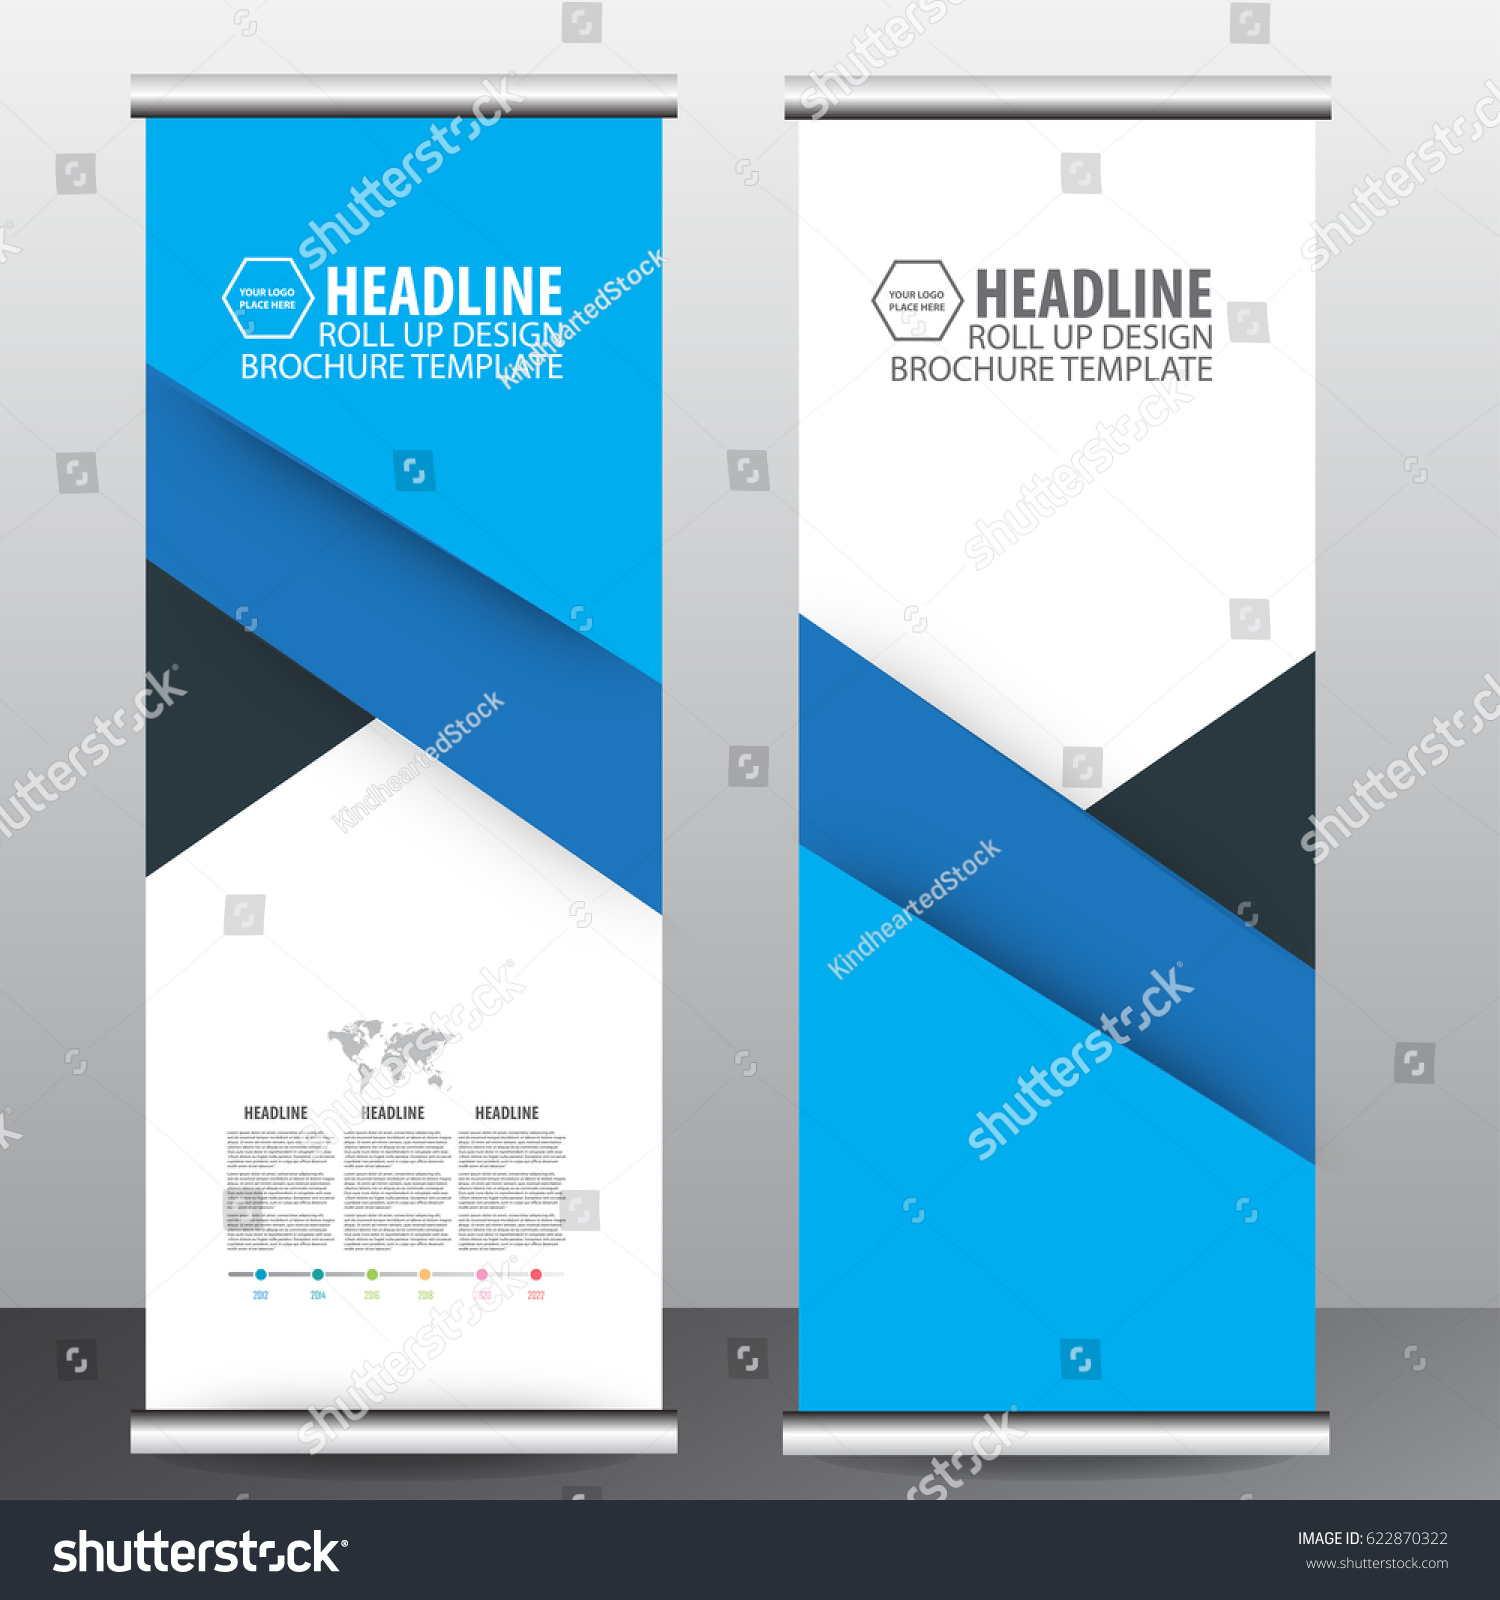 blue roll up business brochure flyer banner design vertical template vector, cover presentation abstract geometric background, modern publication x-banner and flag-banner,carpet design #622870322